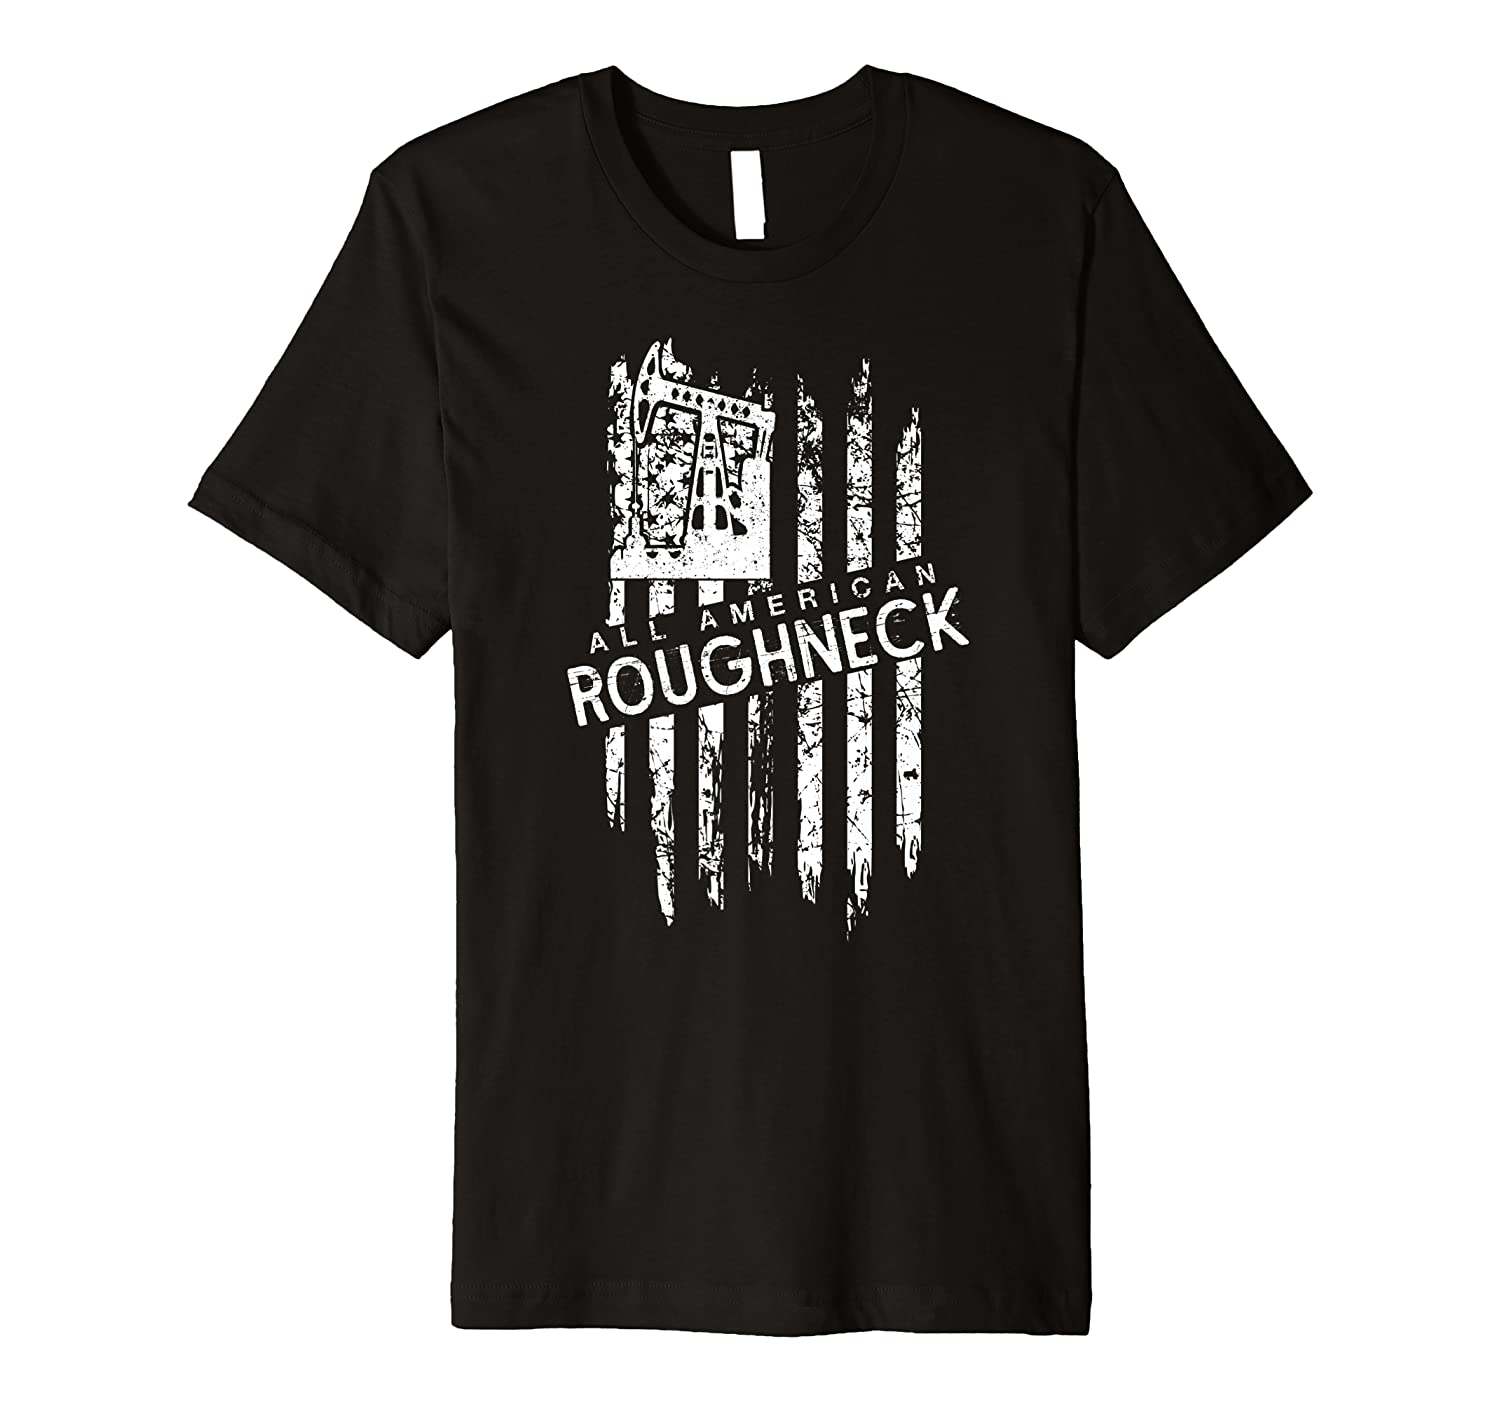 all american roughneck amazon roughneck clothing company